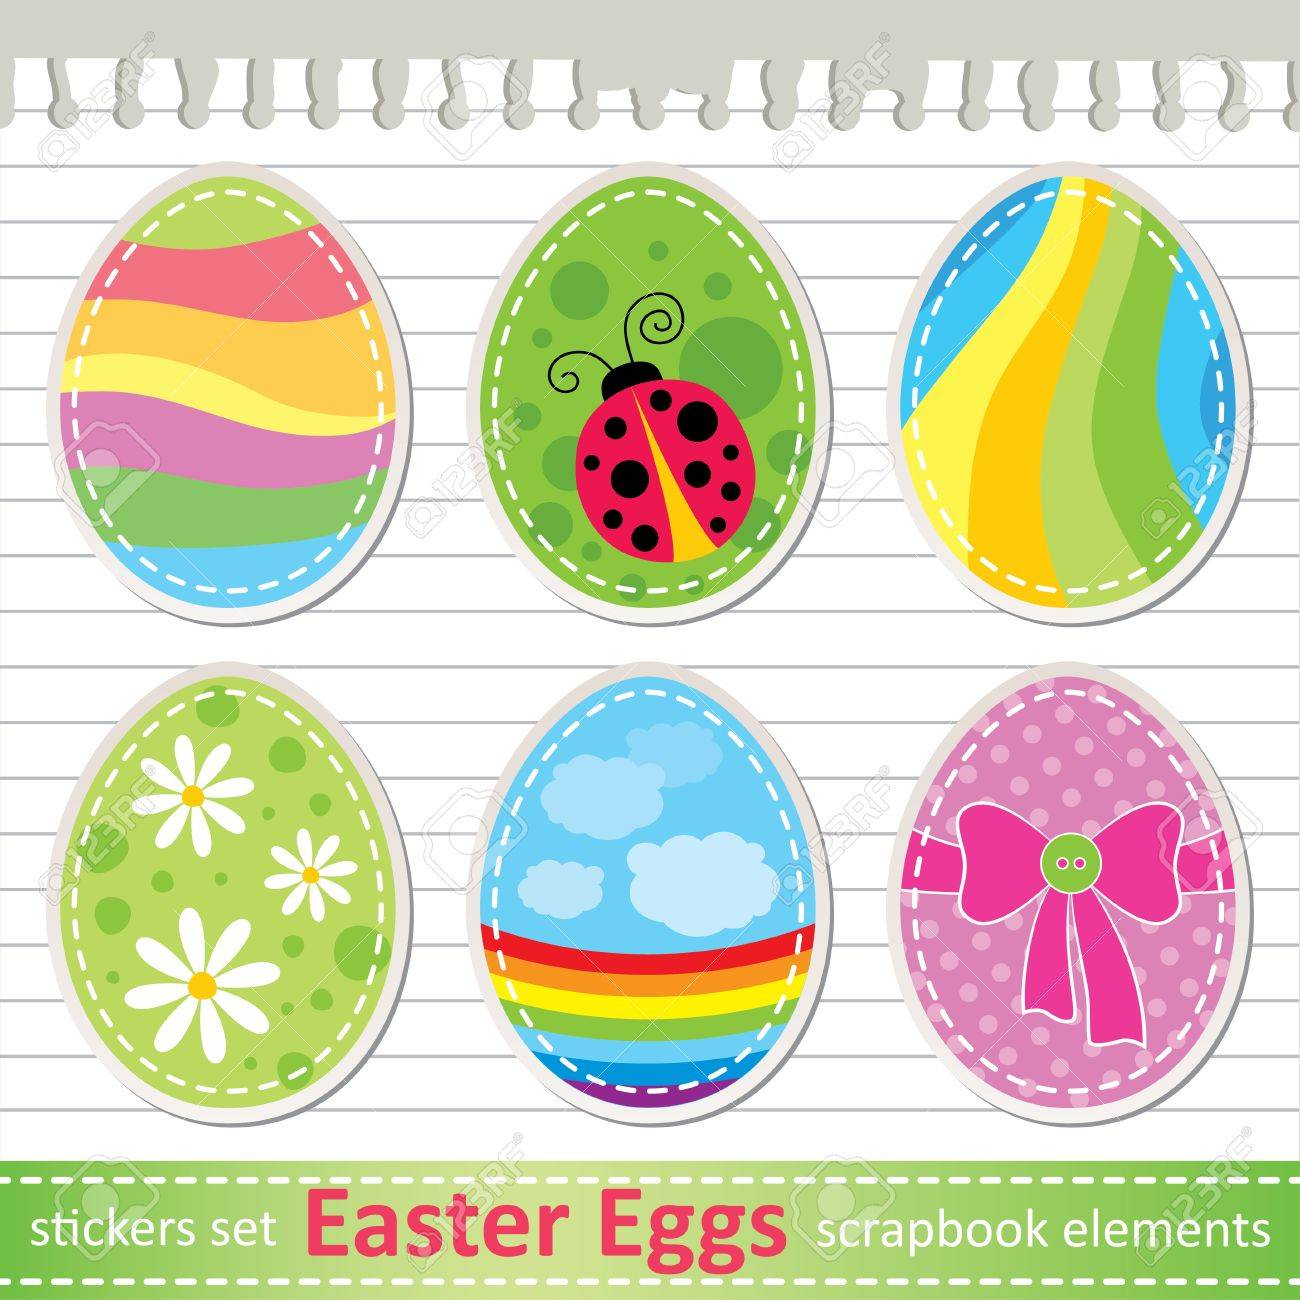 Scrapbook paper and stickers - Vector Set Of Stylized Easter Eggs Paper Stickers